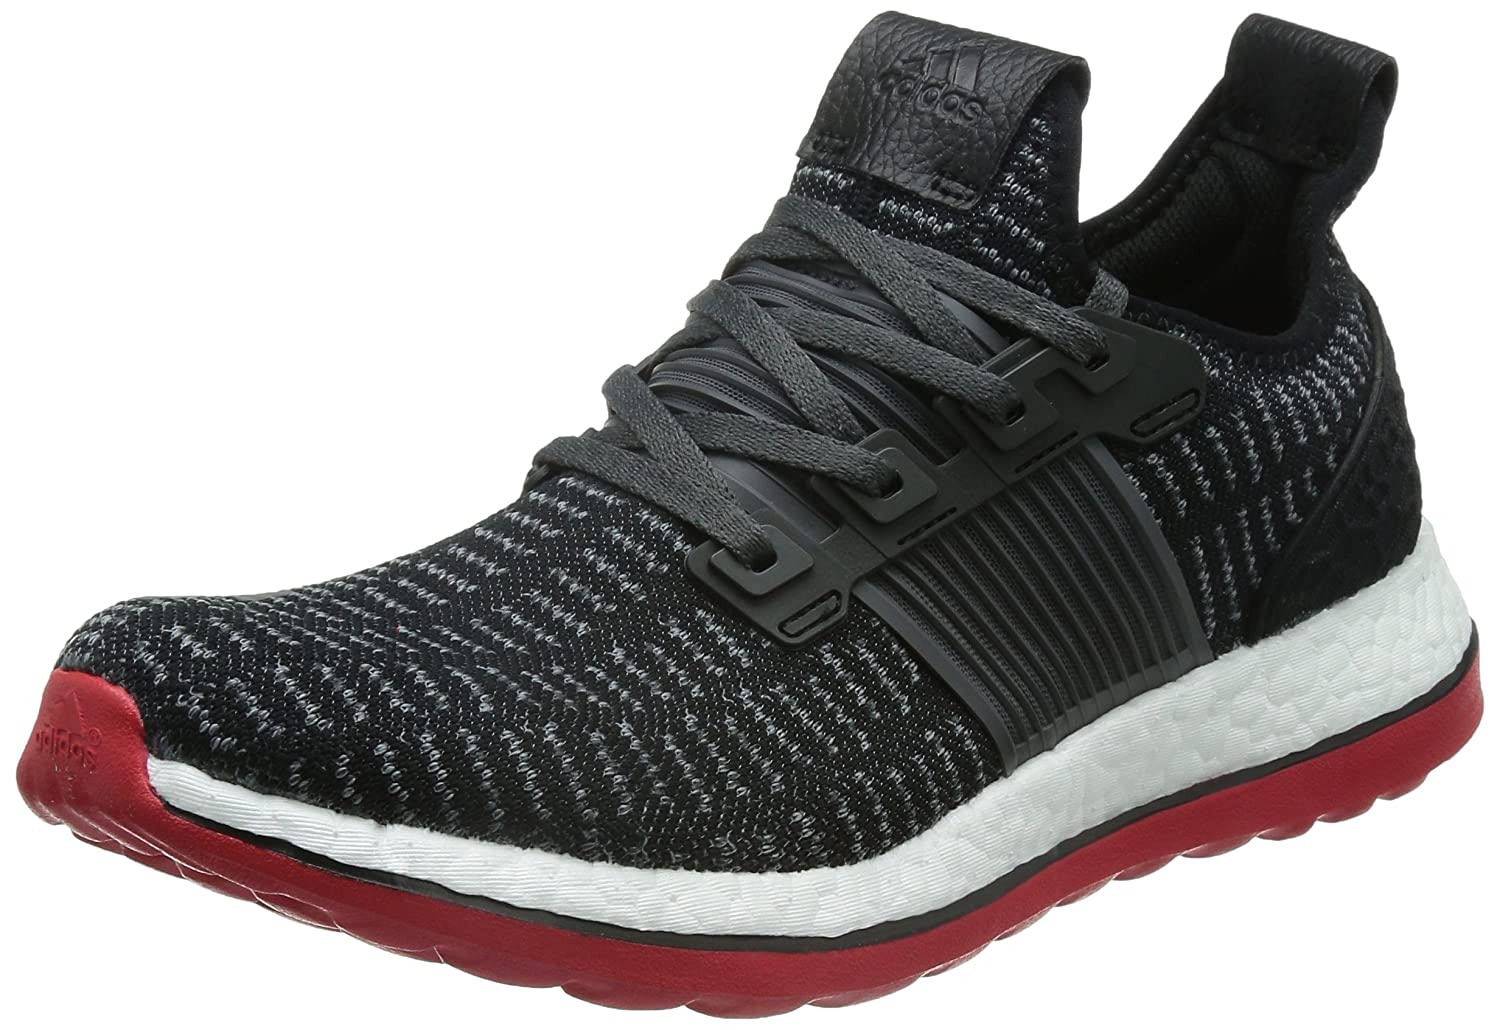 c74514be633a adidas Men s Pureboost Zg Prime M Running Shoes  Amazon.co.uk  Shoes   Bags